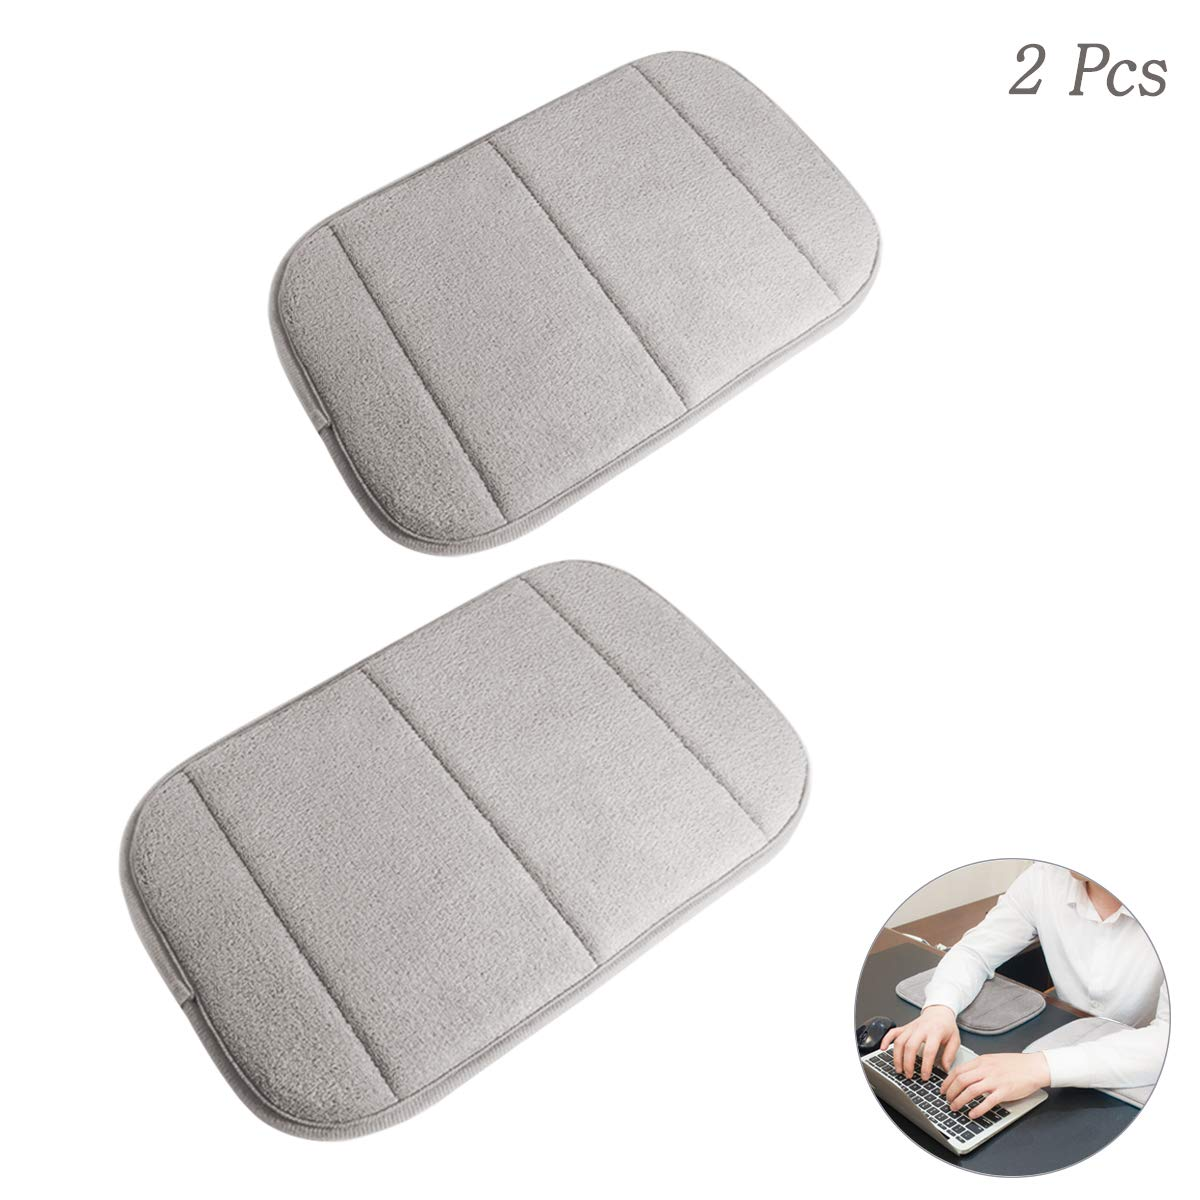 2 Pack Portable Computer Elbow Wrist Pad, Hatisan Premium Memory Cotton Desktop Keyboard Arm Rest Support Mat for Office Home Laptops - More Comfort & Less Strain(7.9 x 11.8 Inch) (Khaki)